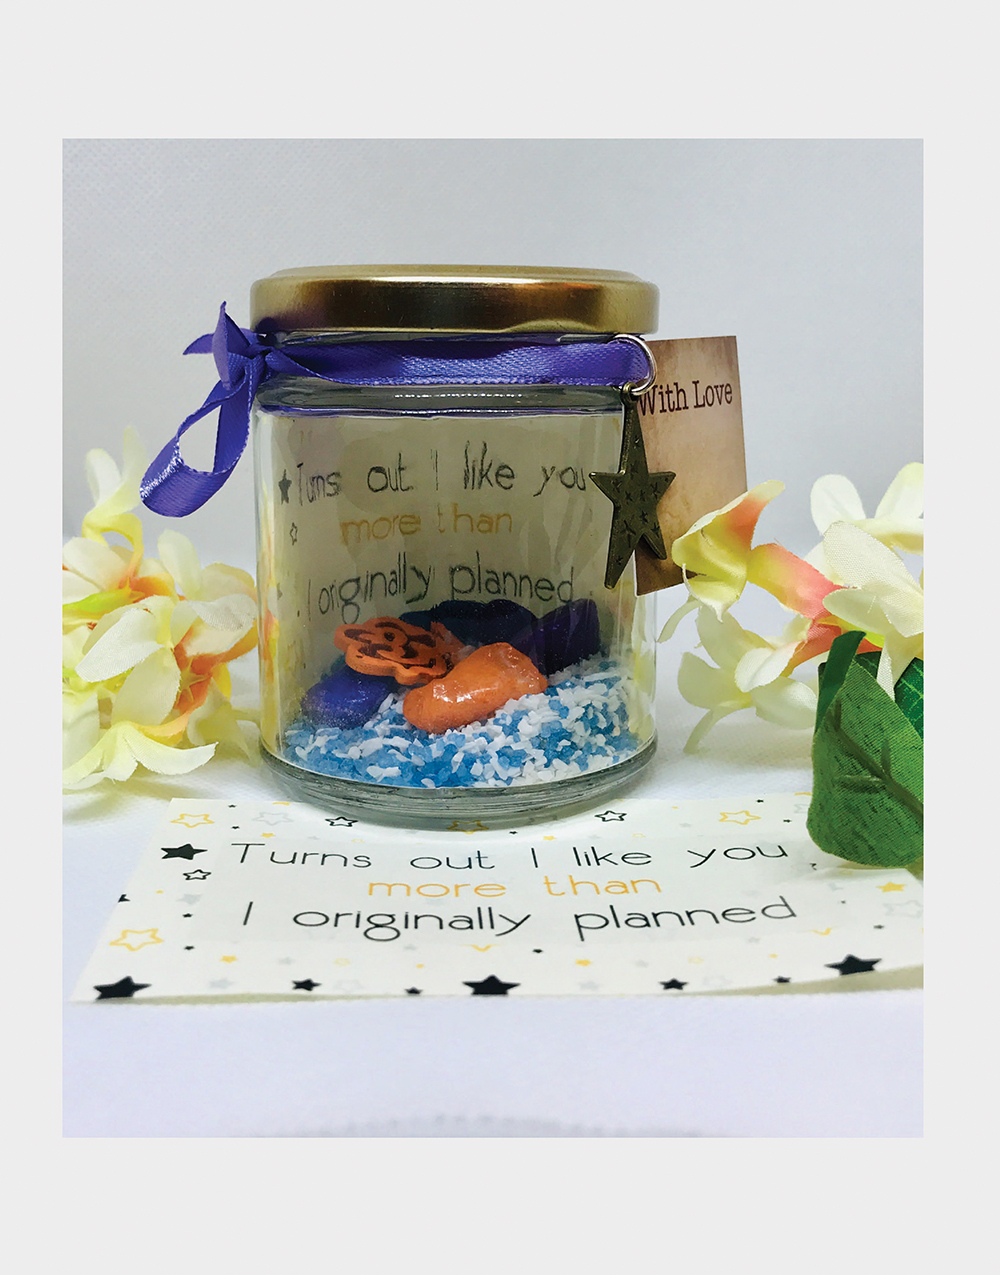 Like you more than planned Message Jar